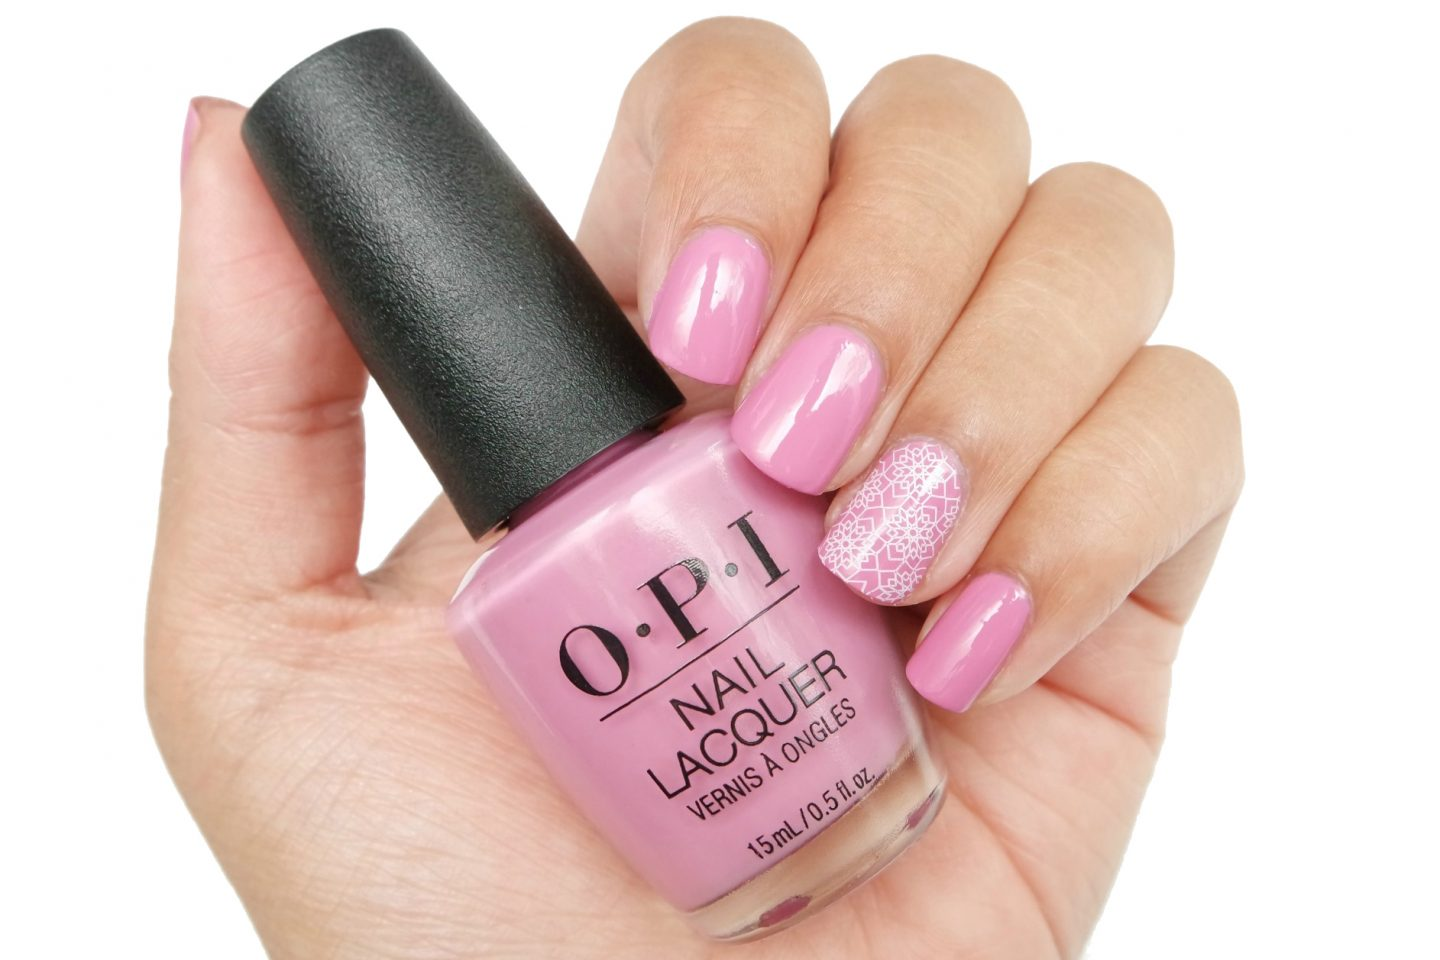 OPI Suzi Will Quechua Later! Swatch